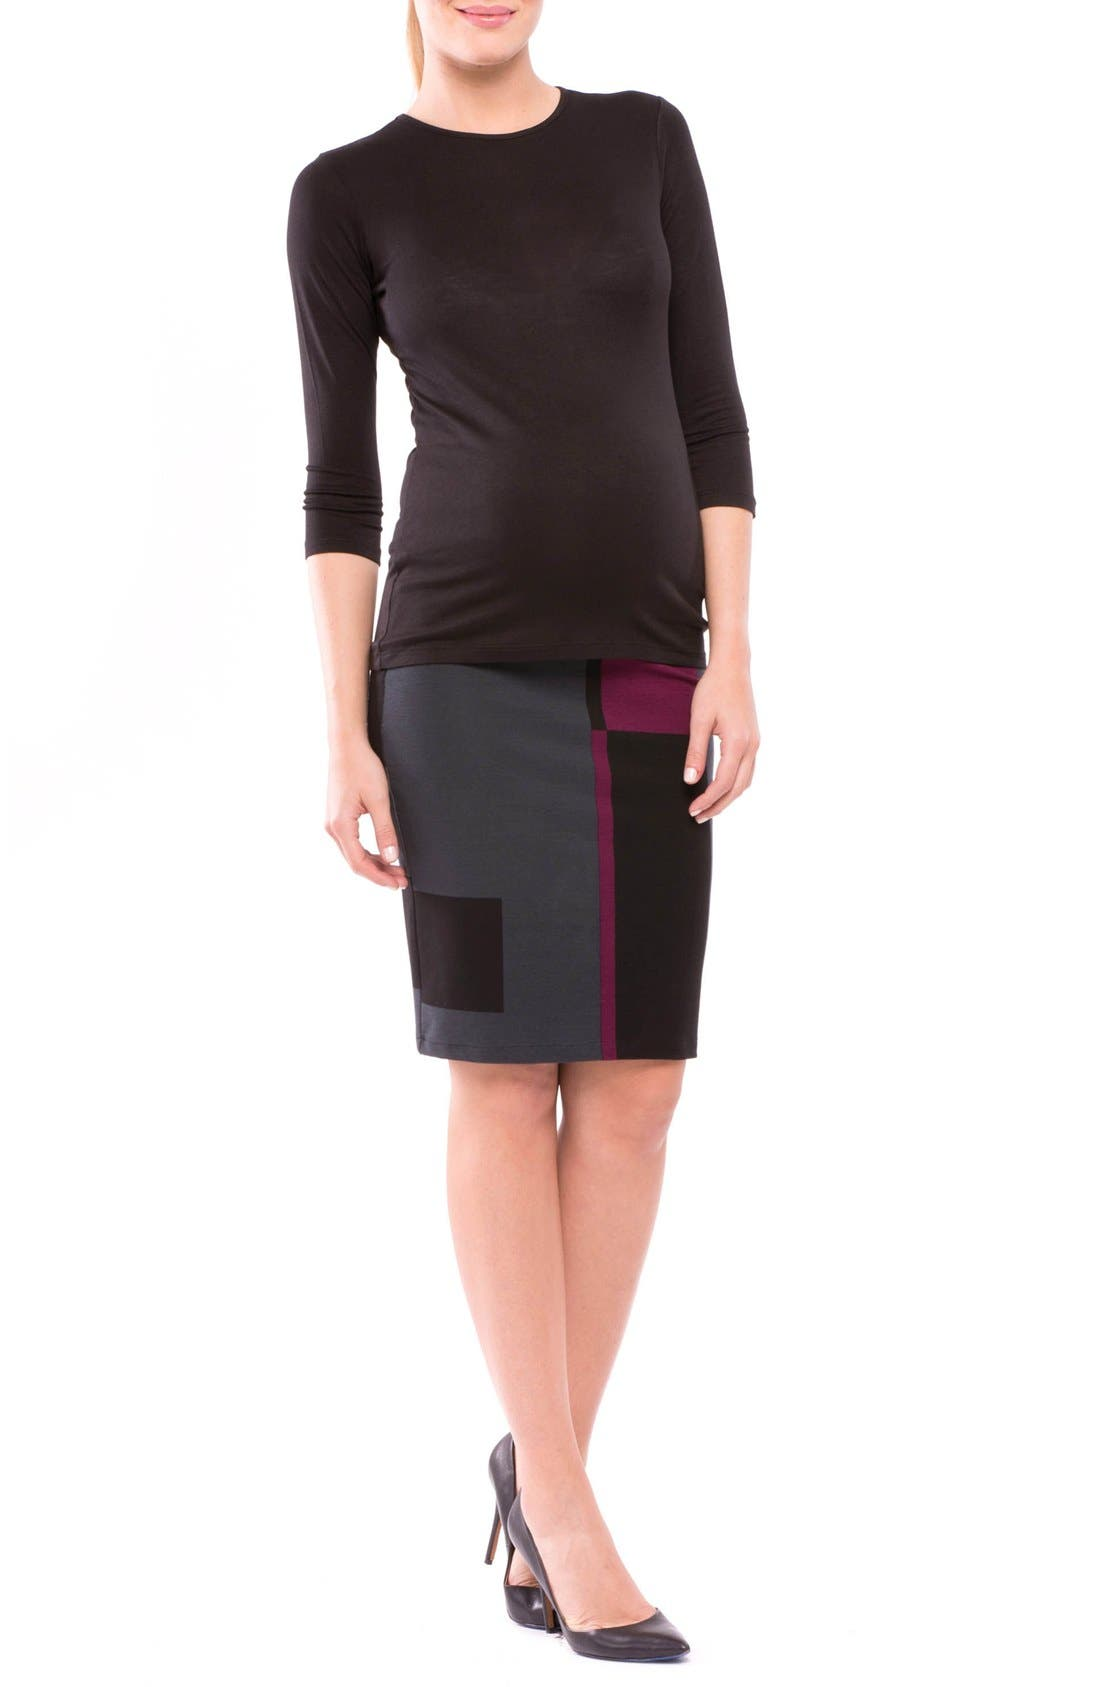 'Madison' Maternity Skirt,                             Alternate thumbnail 4, color,                             Eggplant/ Black